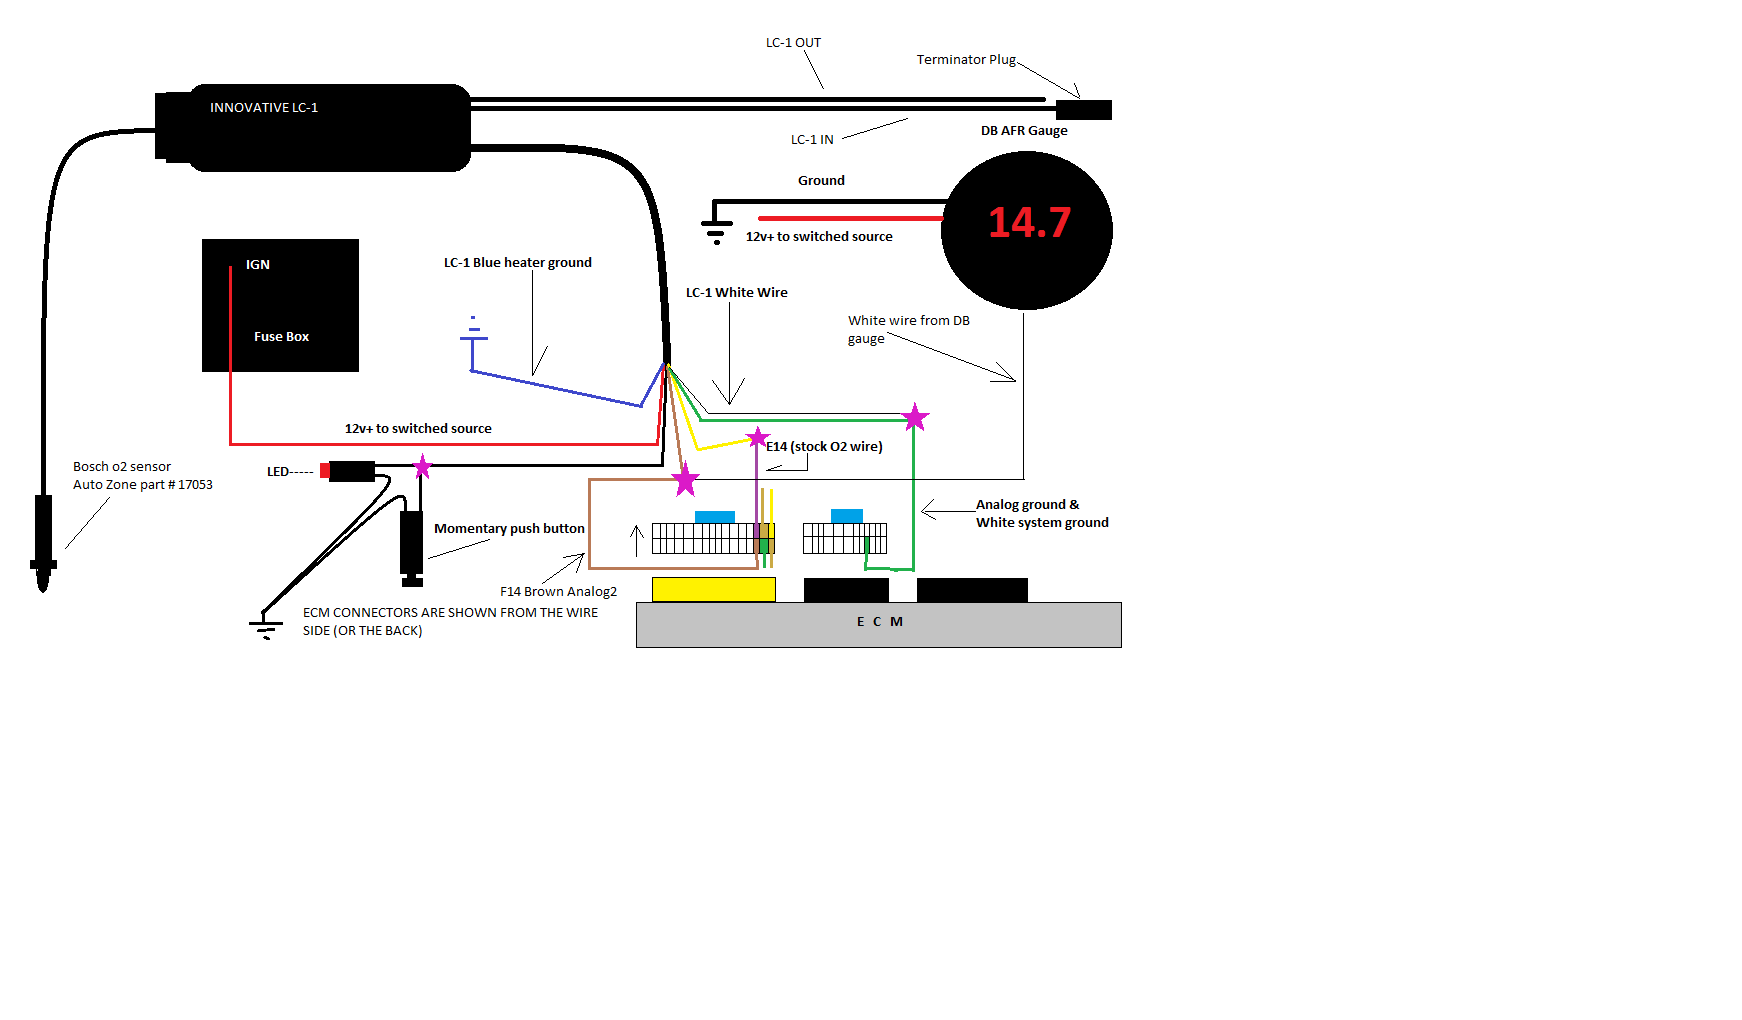 Innovate Lc1 Wiring Diagram on aston martin wiring diagram